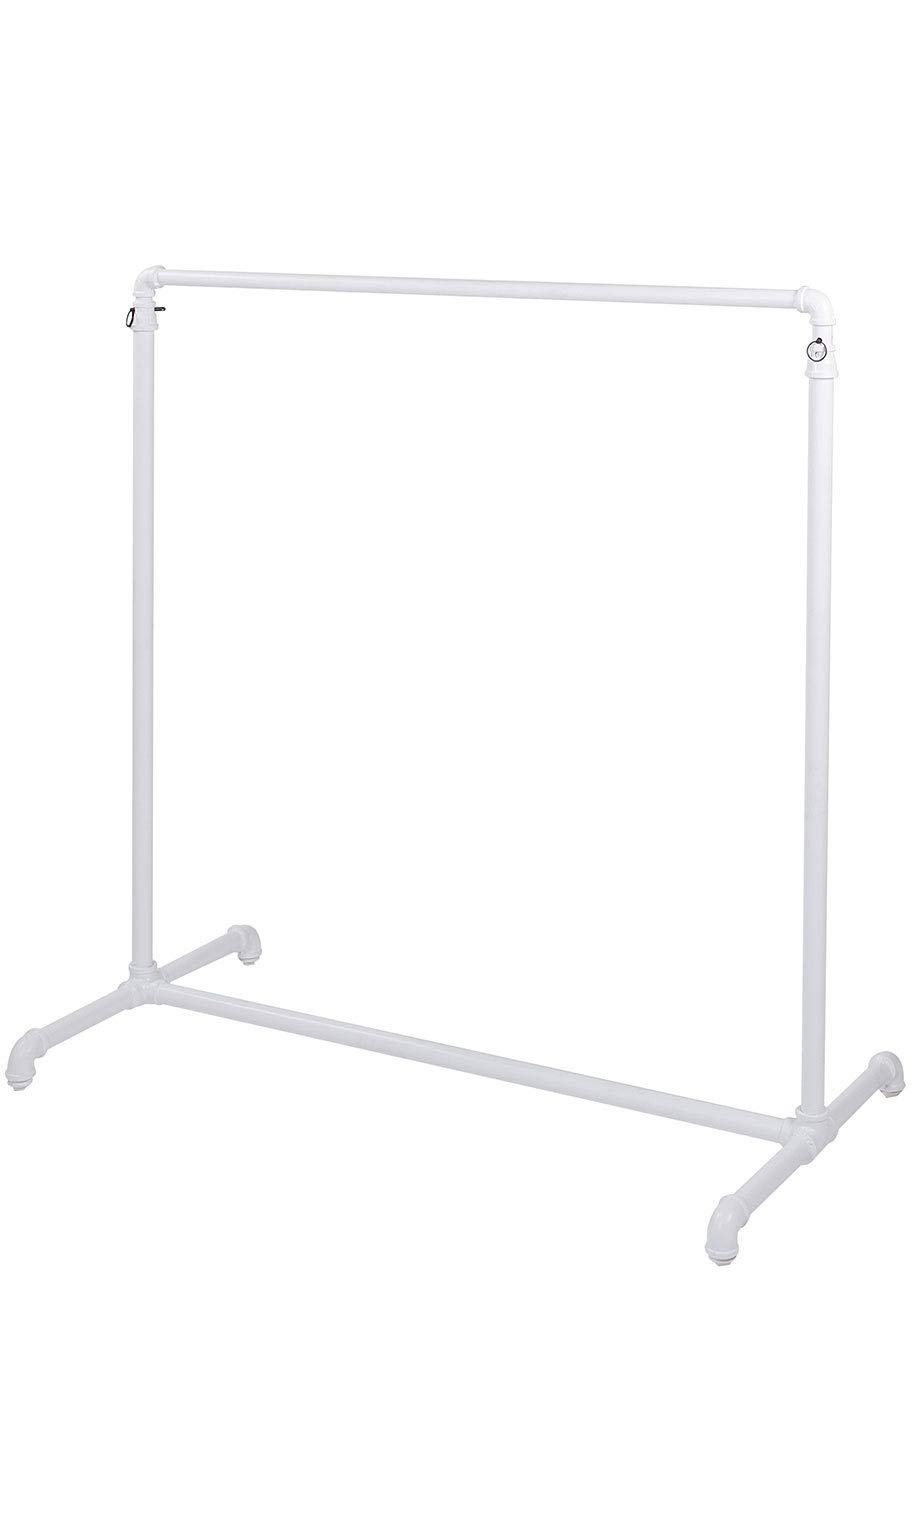 SSWBasics Boutique White Pipe Single Rail Ballet Bar Clothing Rack - 48'' W x 23½''D x 48''-72'' H